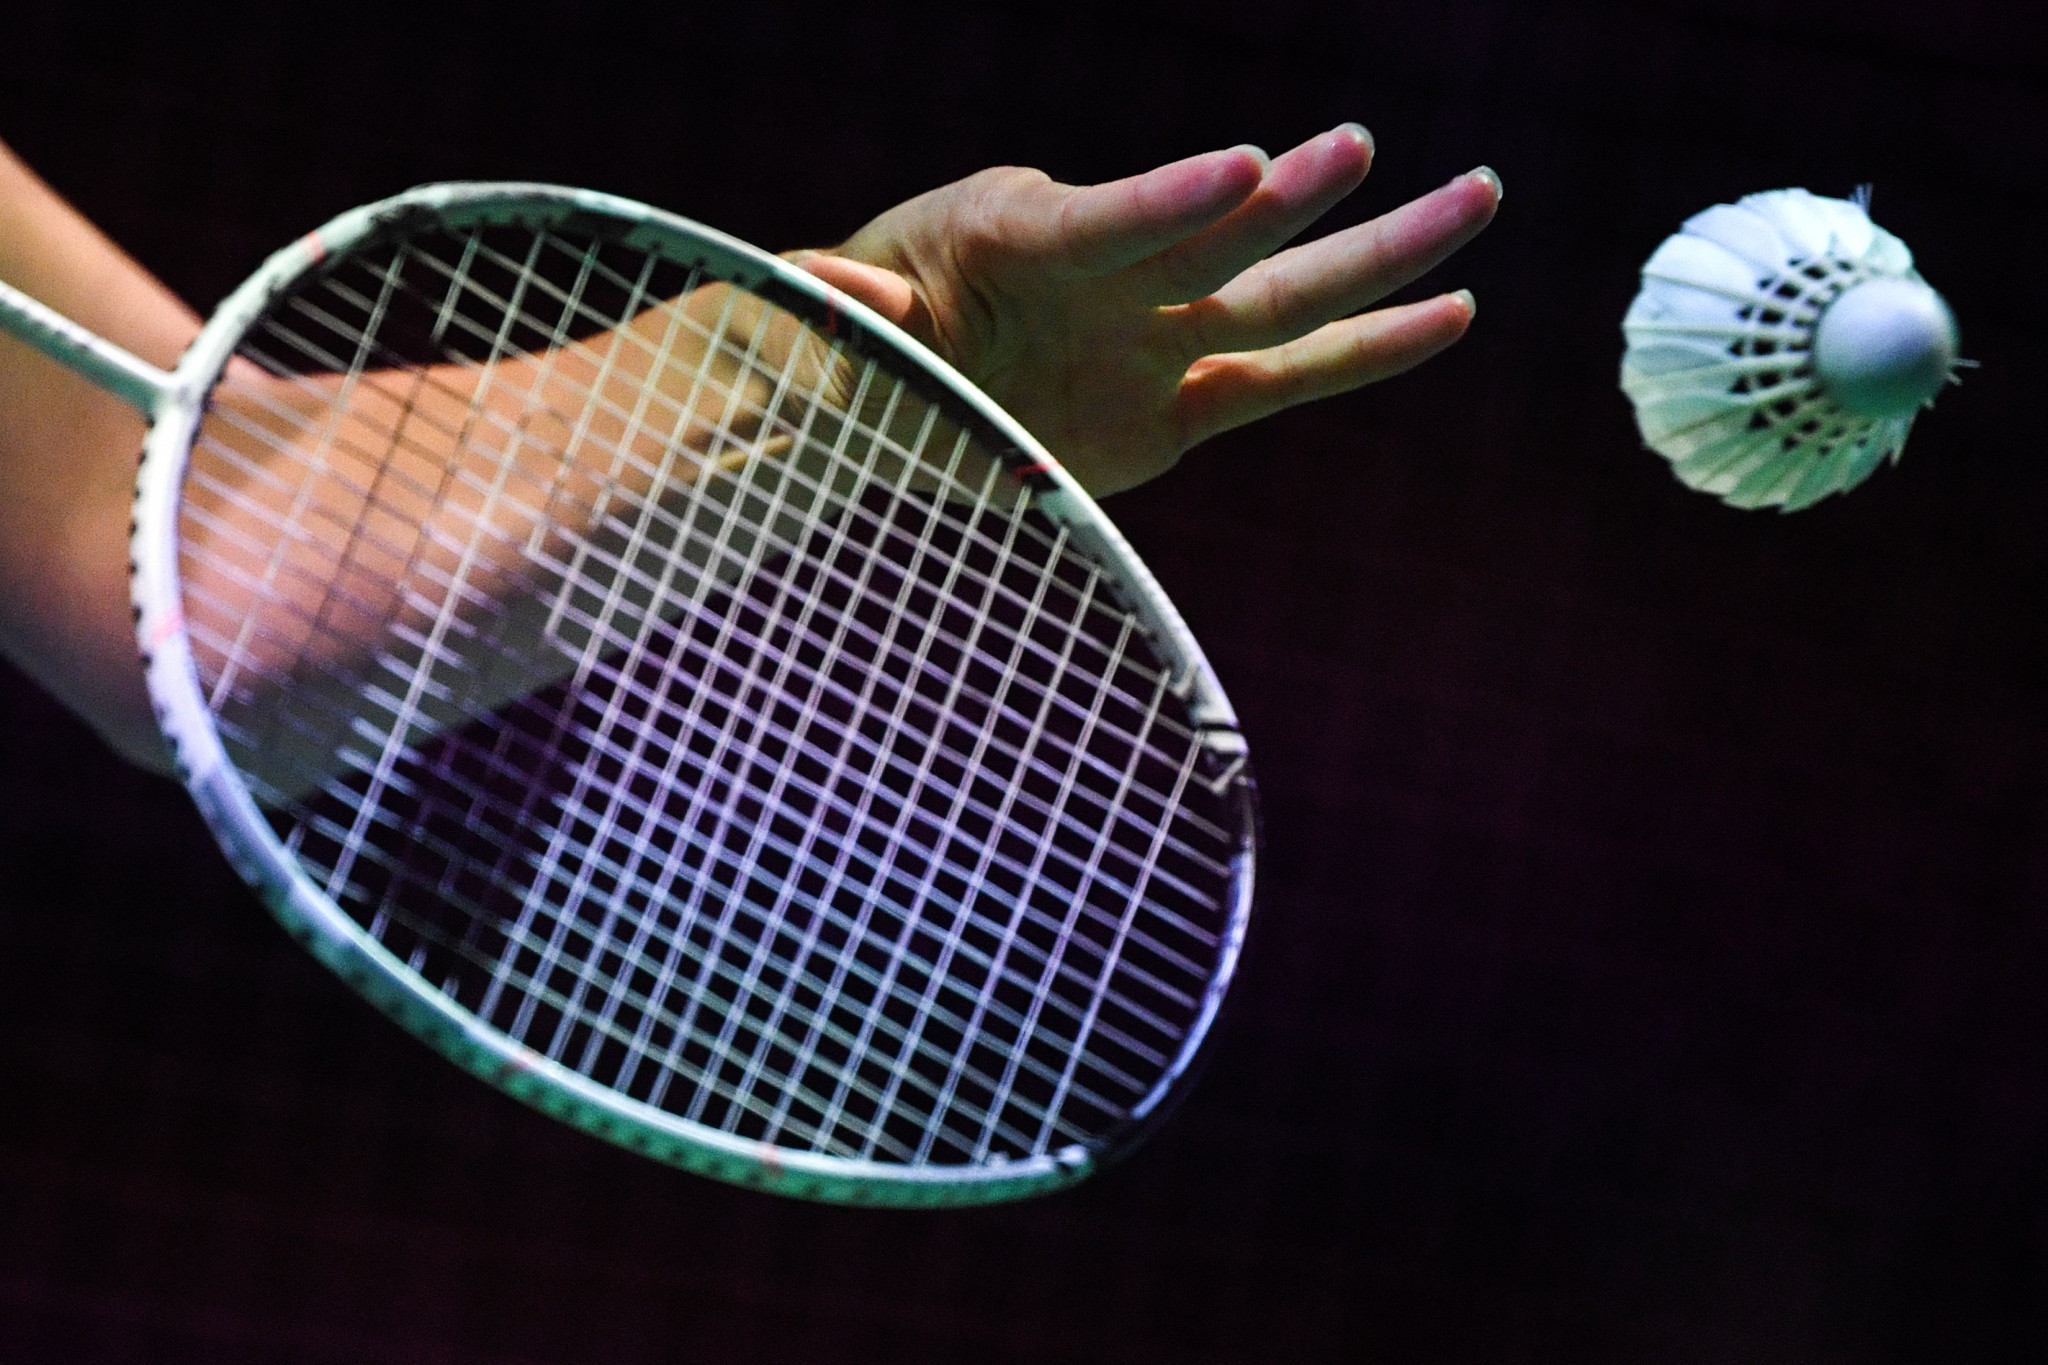 BWF distributes first grant programme payments to help members return to badminton